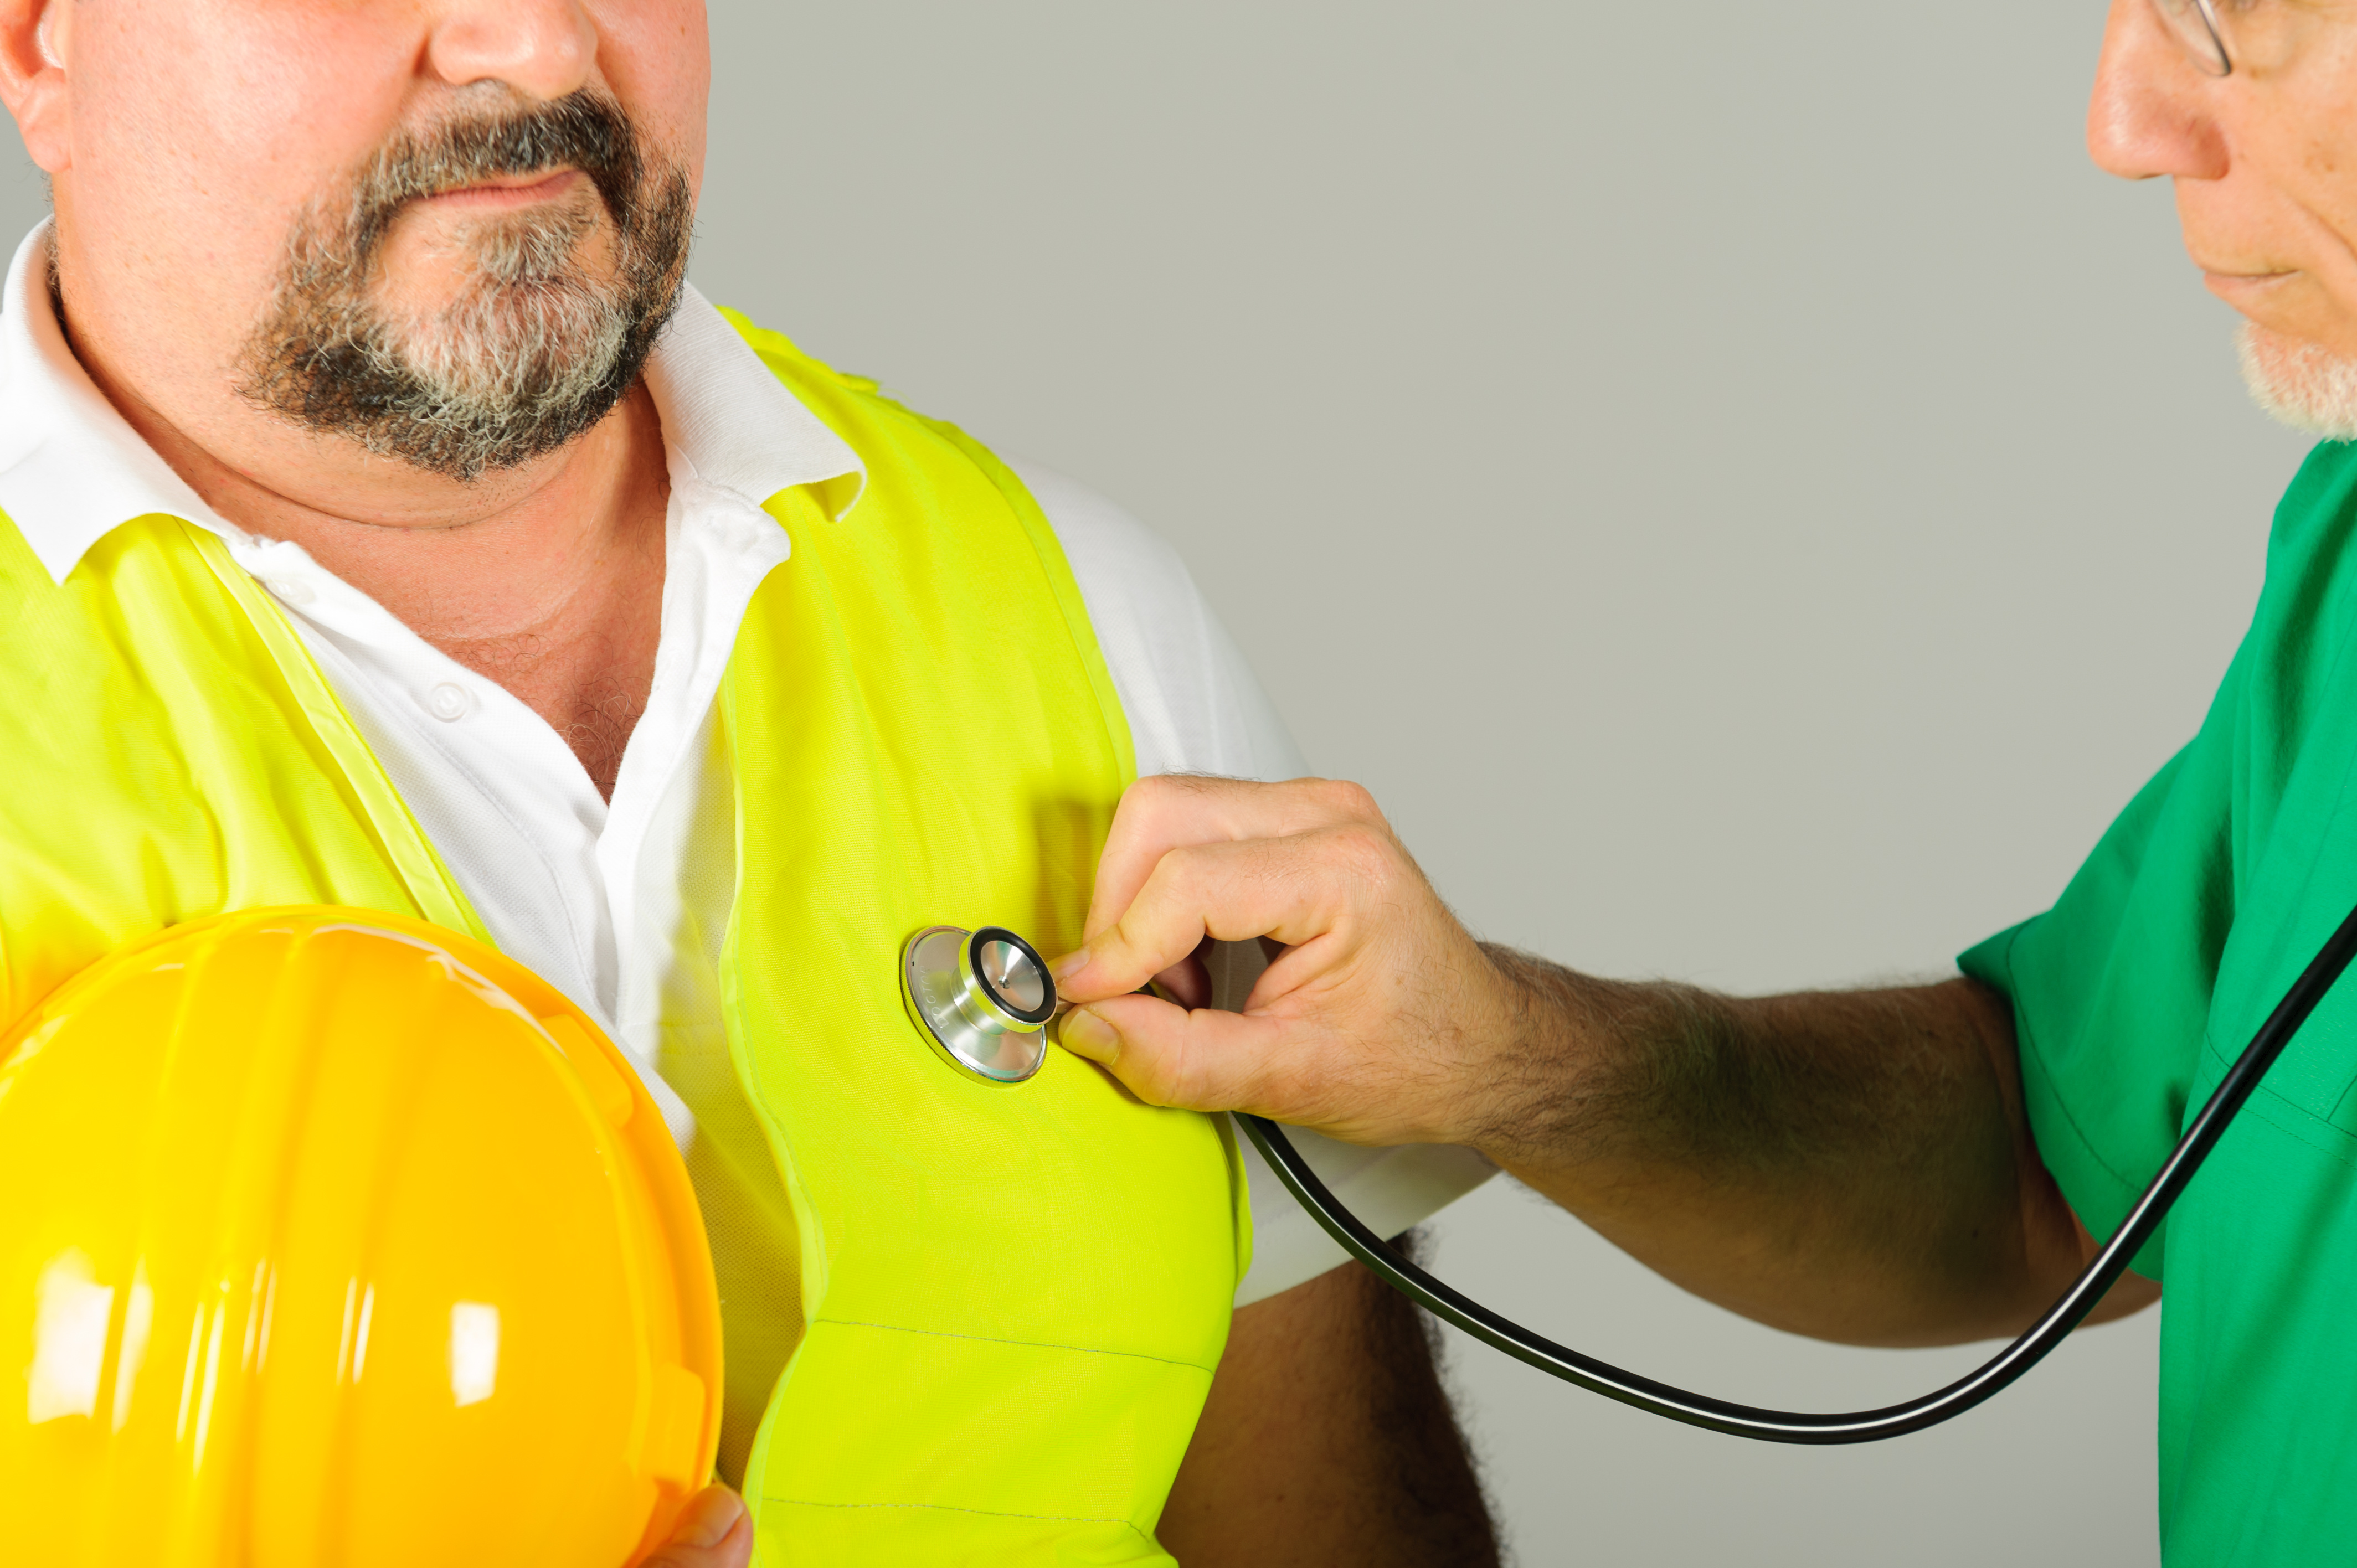 hard hat labor at medical doctor examination isolated background